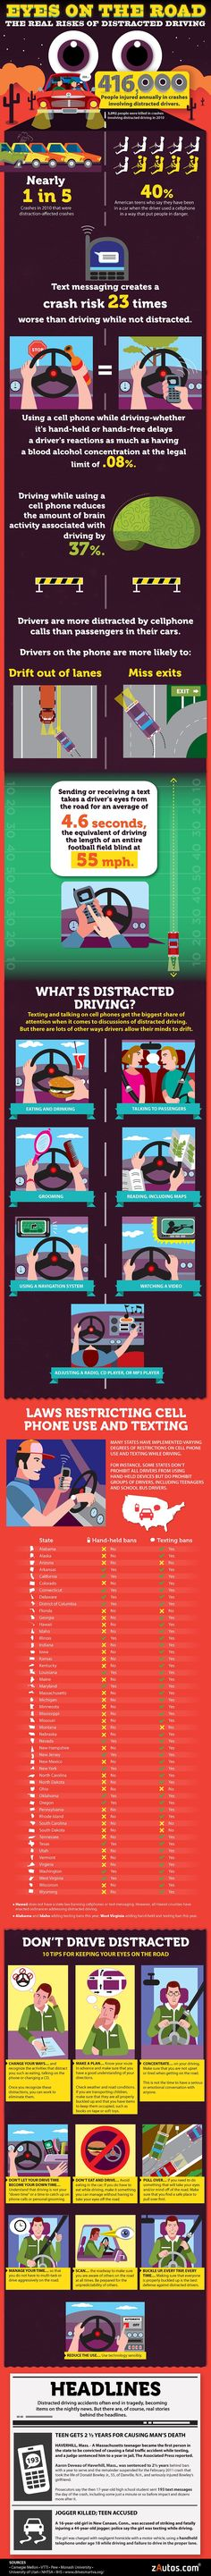 The are the risks that distracted drivers pose to the rest of the world. These same distractions create rage in others drivers that are less distracted and focused on the road.